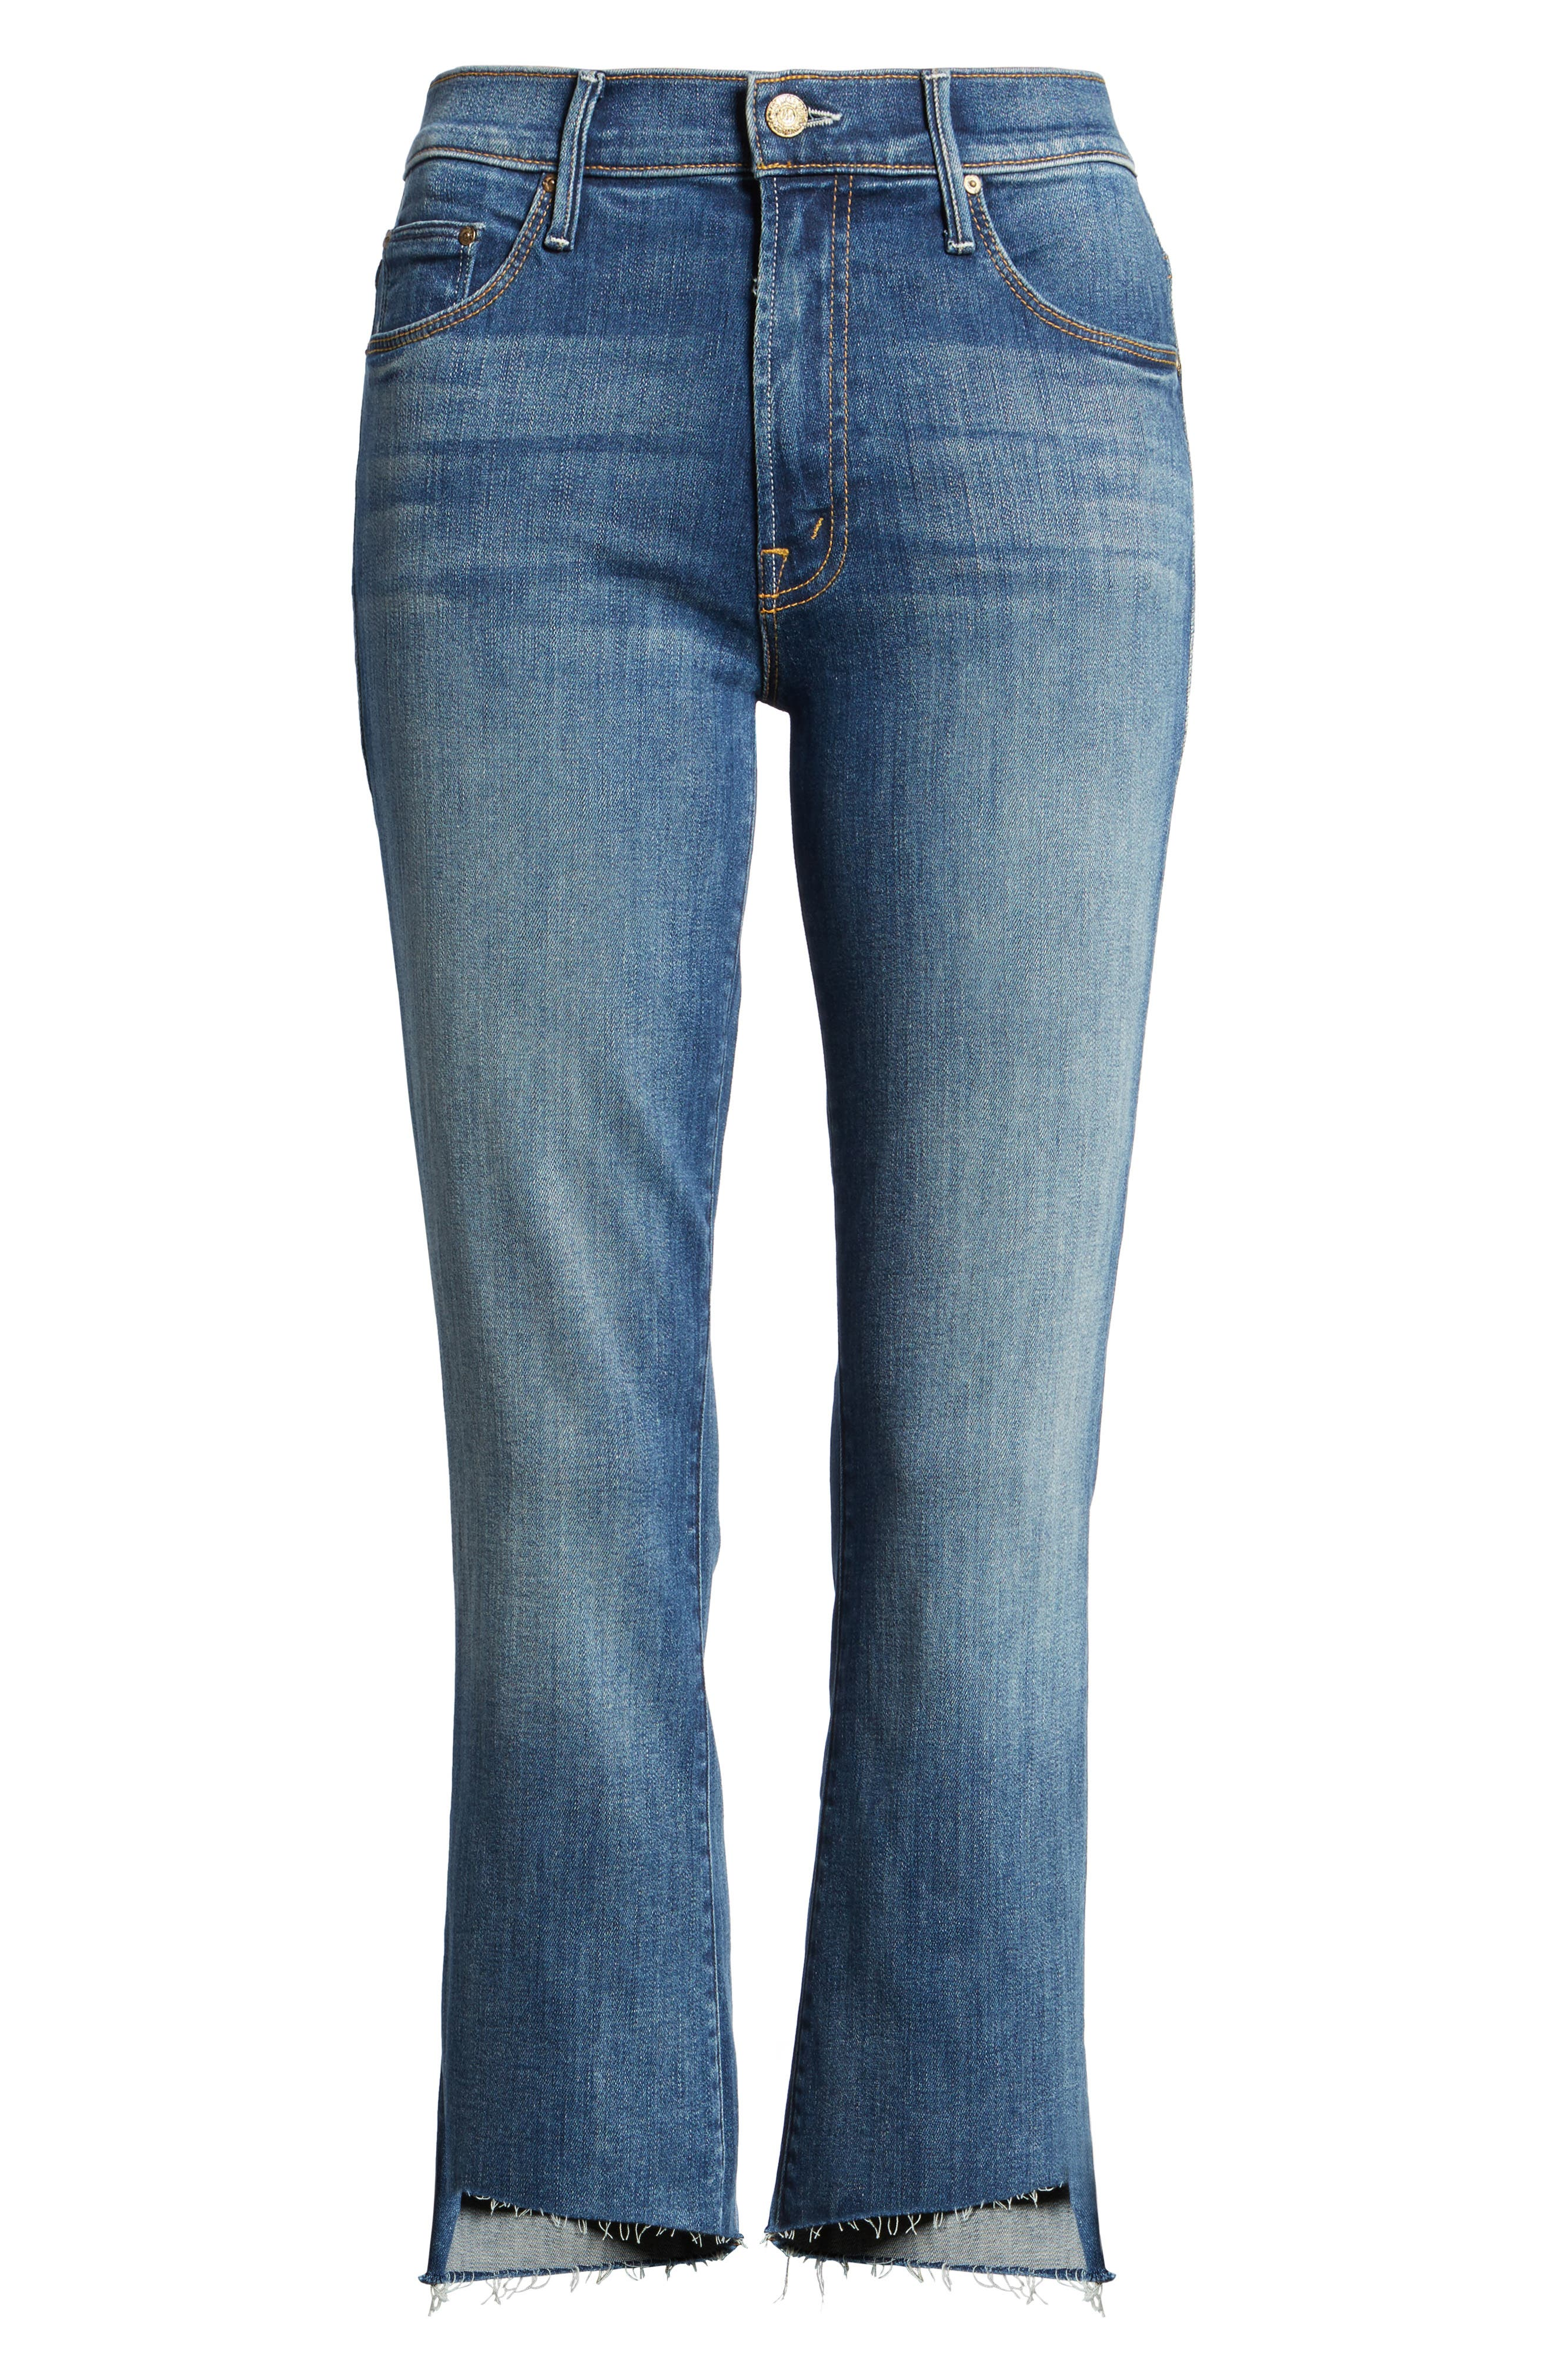 'The Insider' Crop Step Fray Jeans,                         Main,                         color, 420